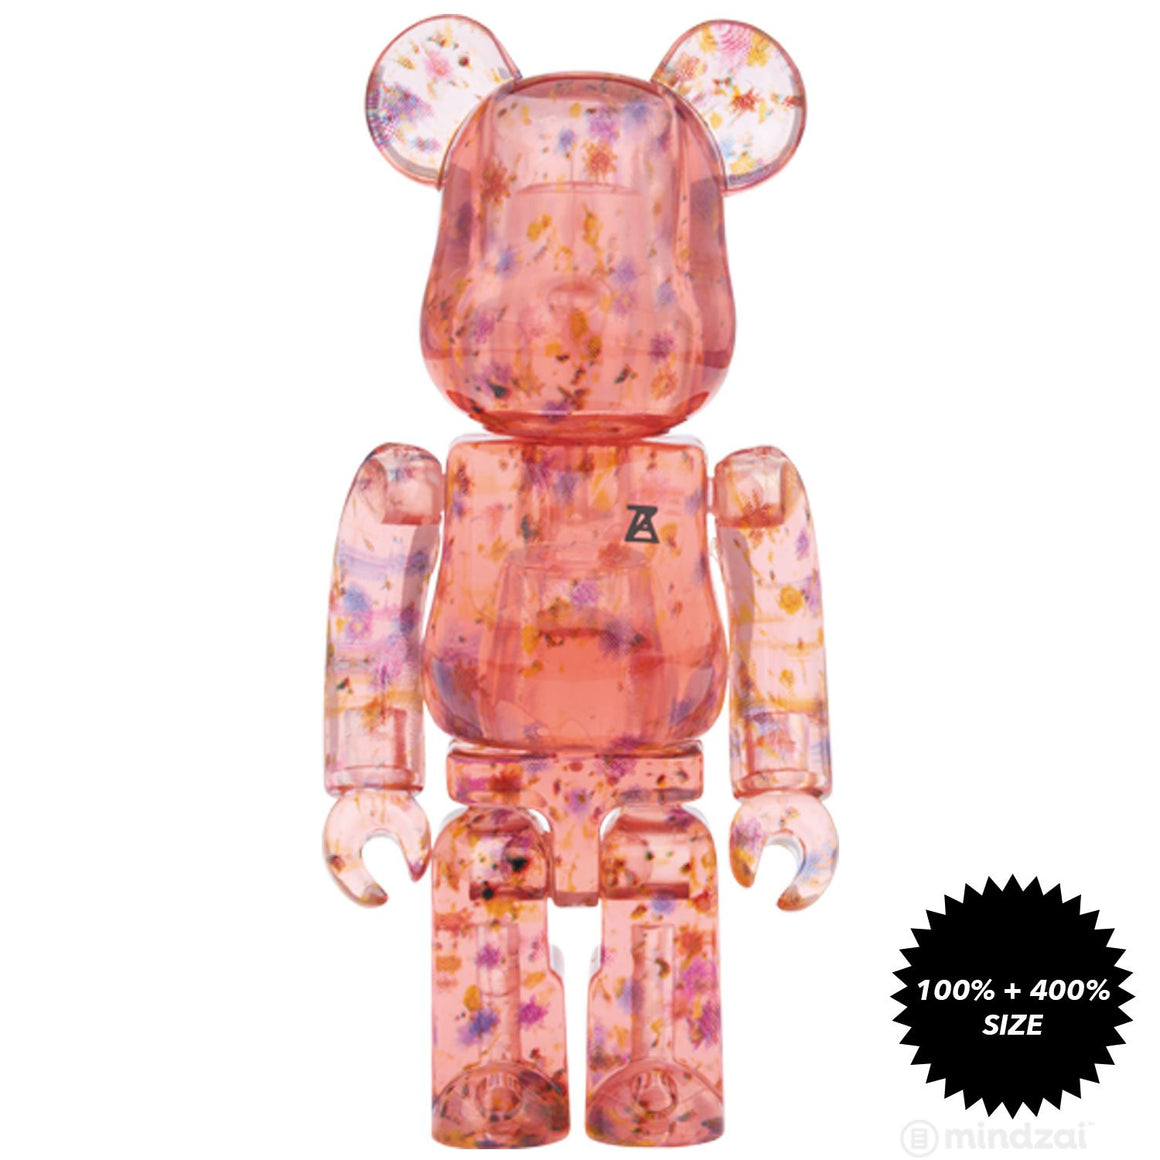 Flower Clear Red Edition 100% + 400% Bearbrick Set by Anrealage x Medicom Toy